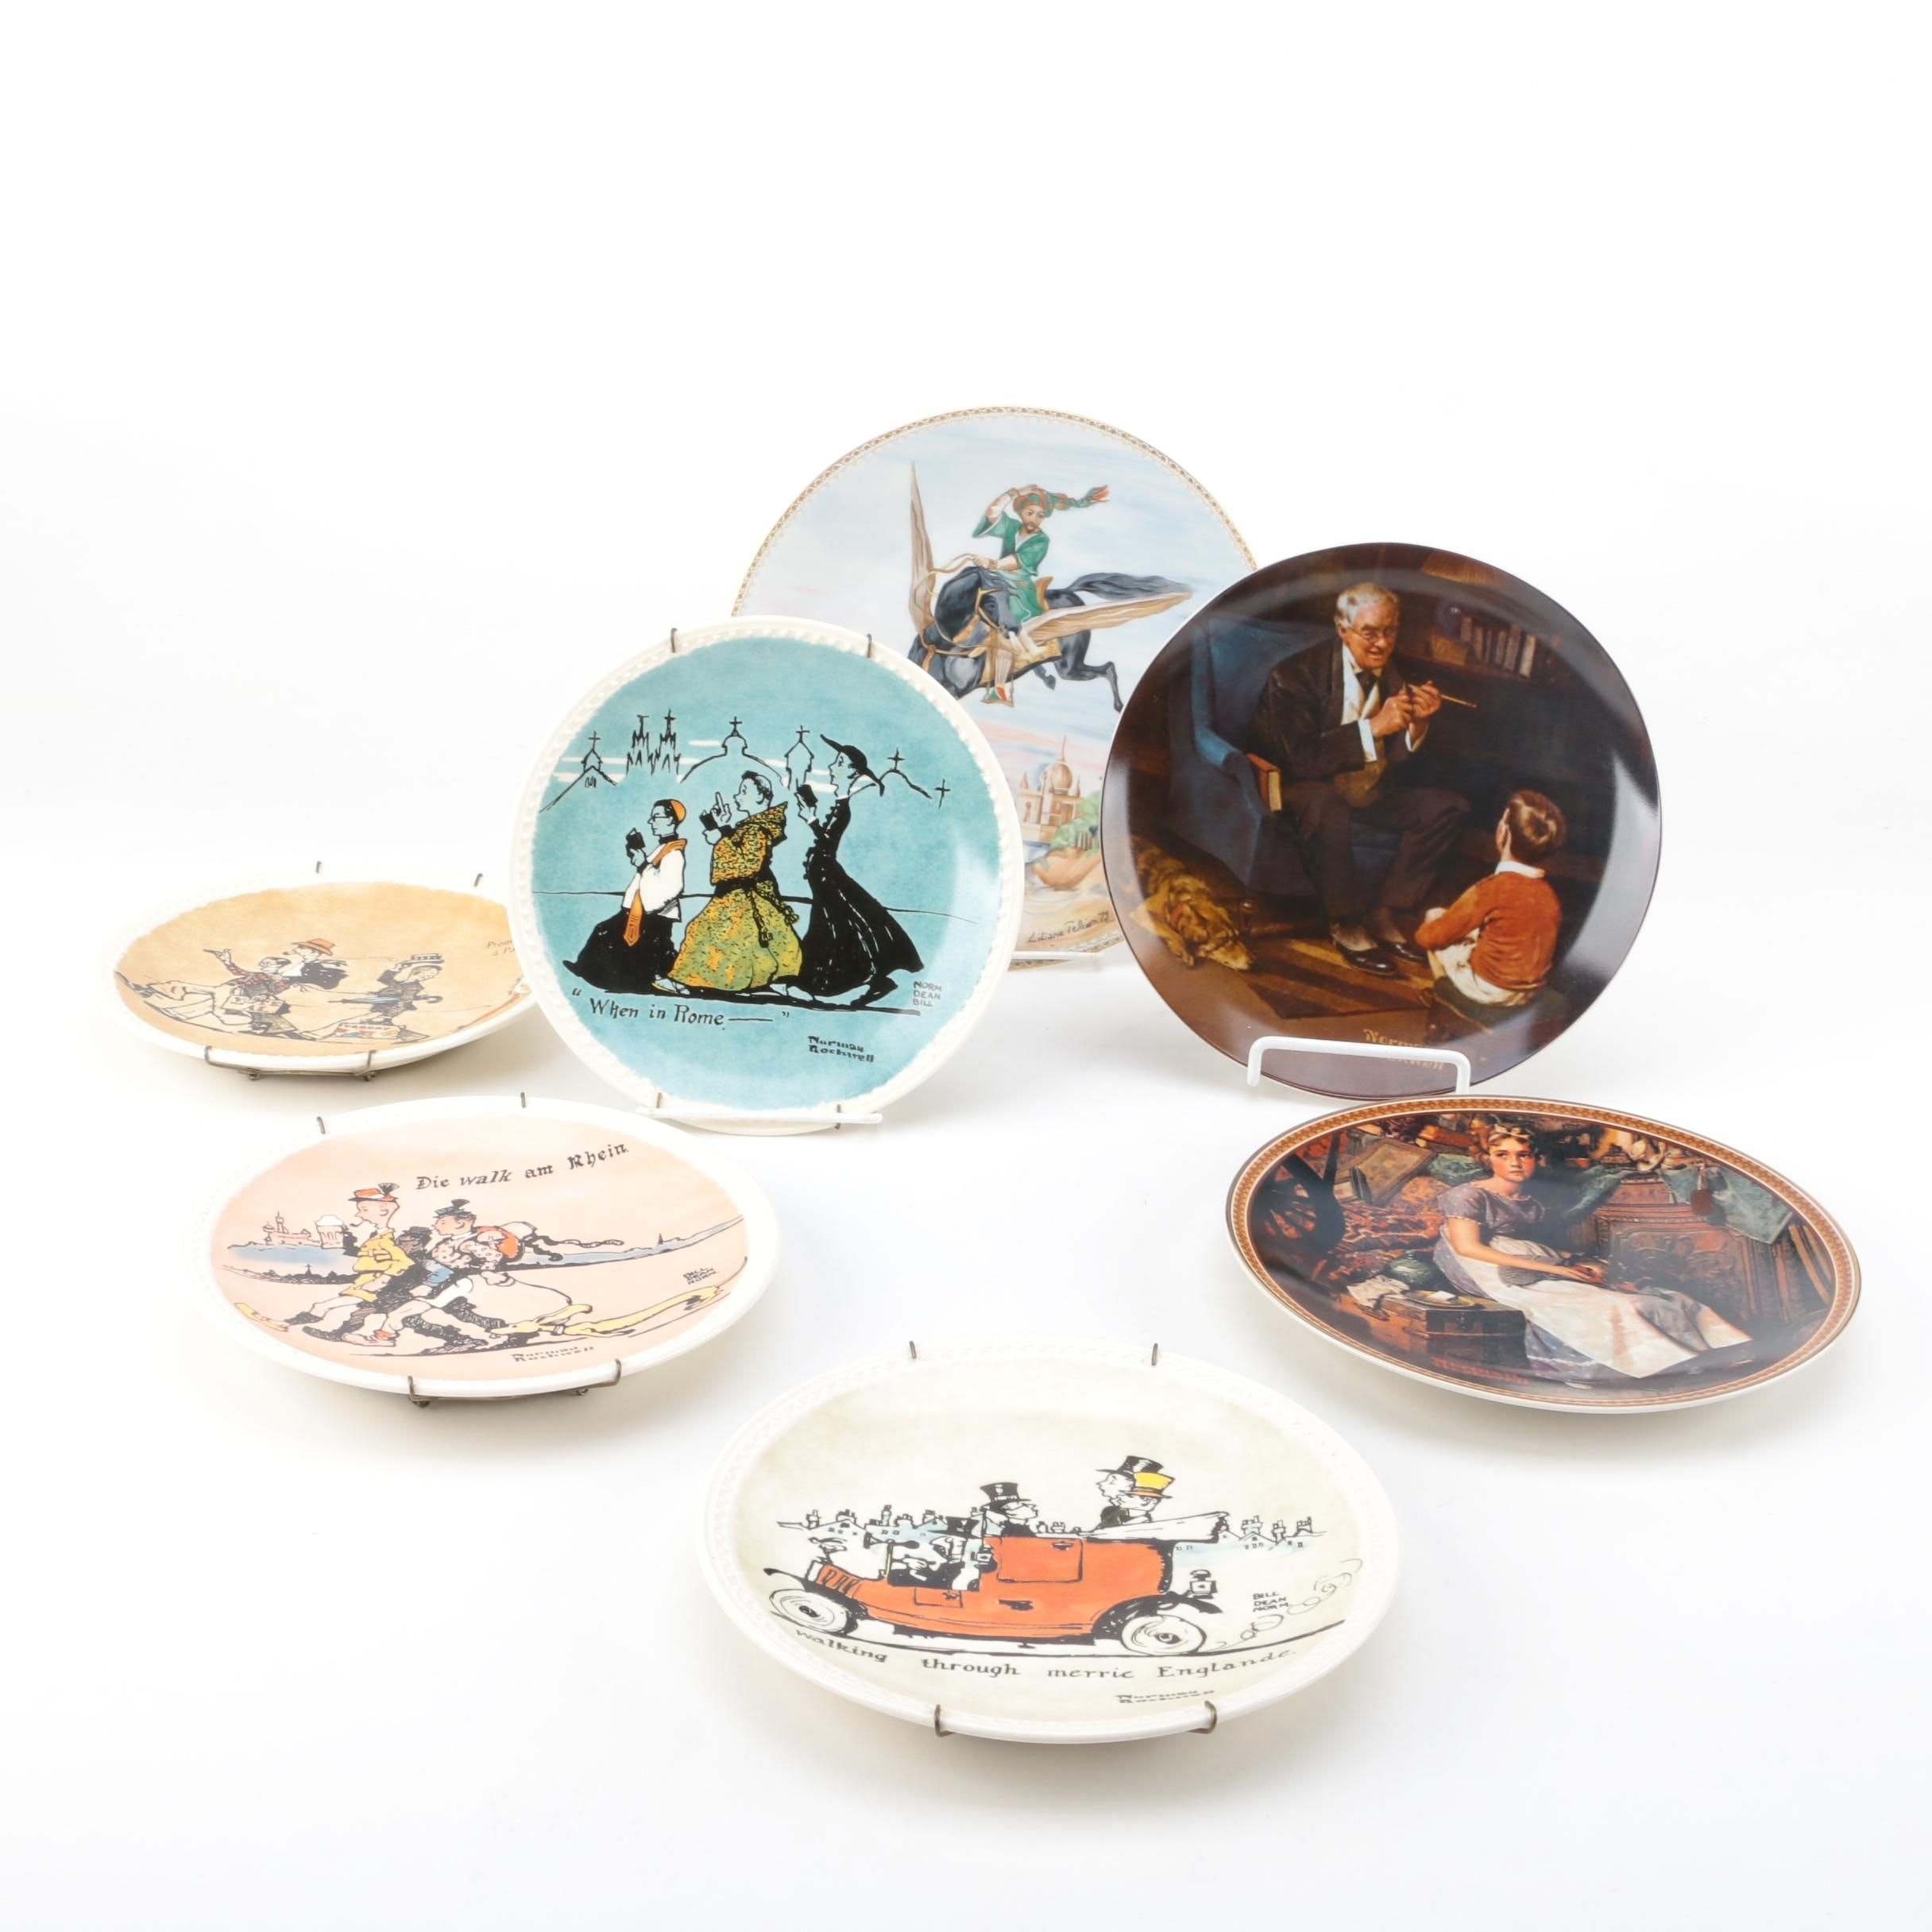 Vintage Commemorative Plates Featuring Limoges